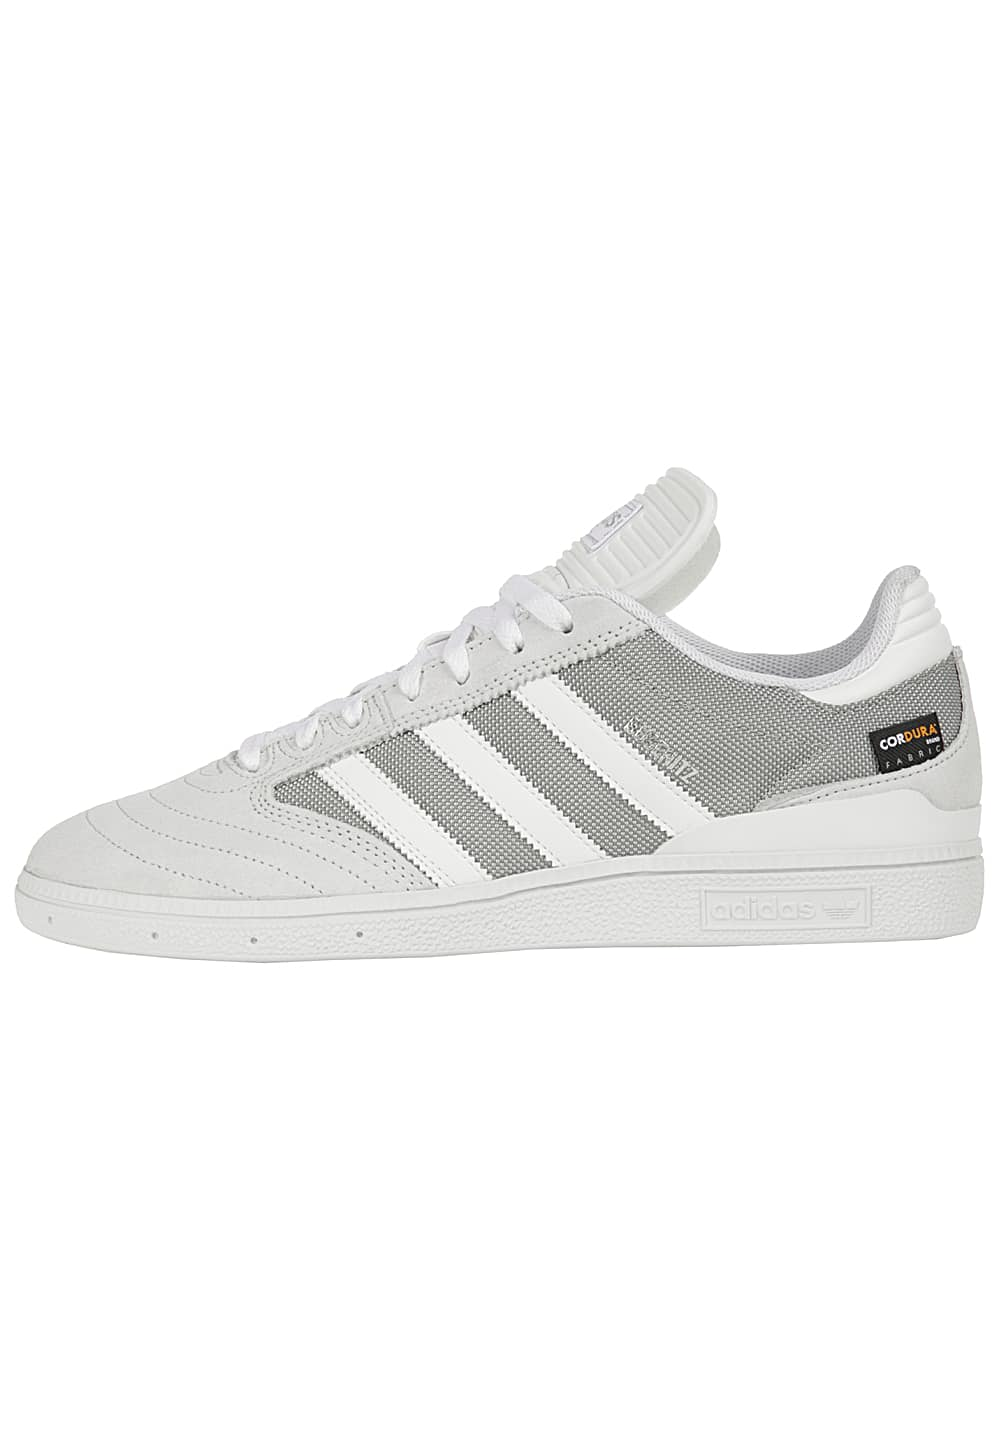 nouveau produit 0608d 66f5b Adidas Skateboarding Busenitz - Sneakers for Men - White